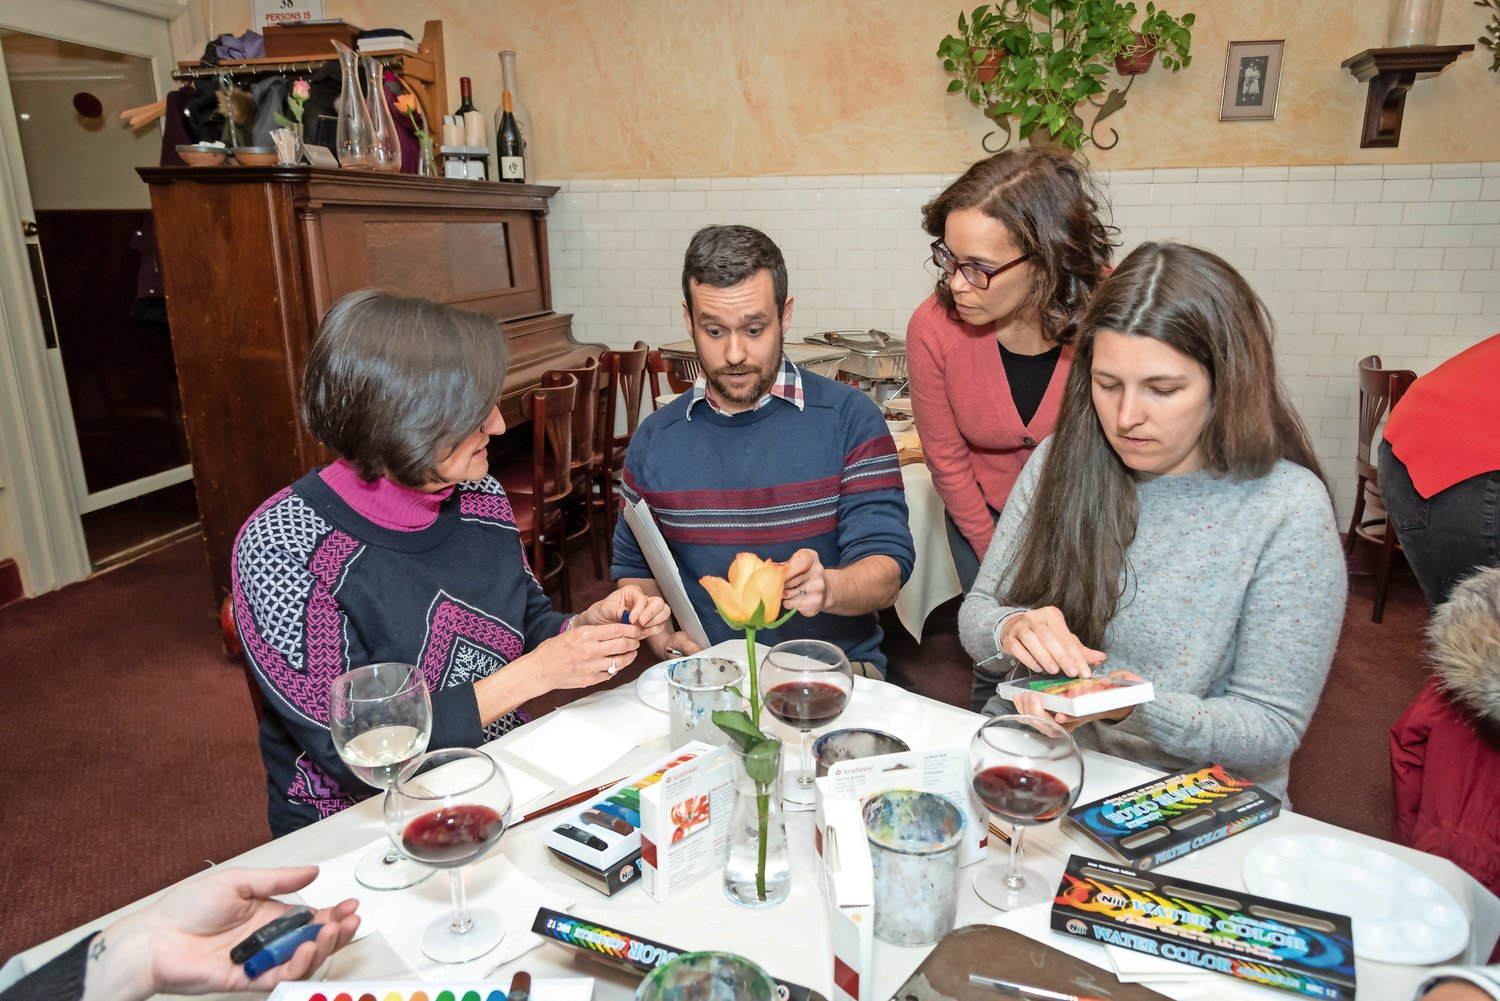 Alison Smith, left, Benjamin Benfield, Dalia Rodriguez and Kristie Leigh deliberated which paints they would use in their artworks.